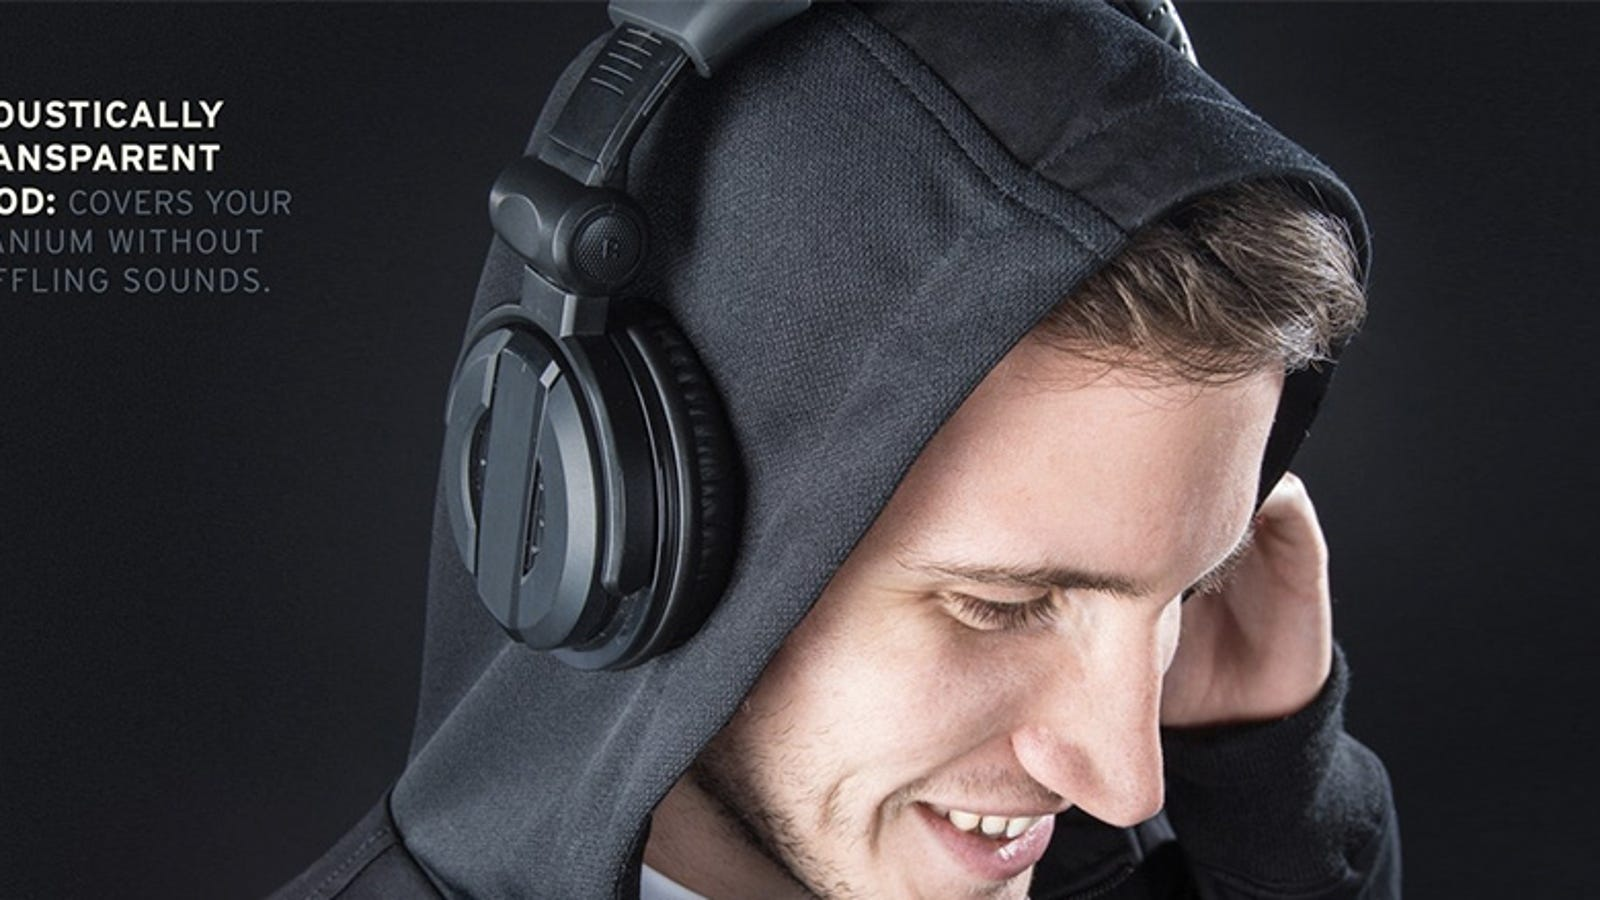 earbuds pack samsung - A Hoodie Made From Speaker Fabric Won't Muffle Your Headphones